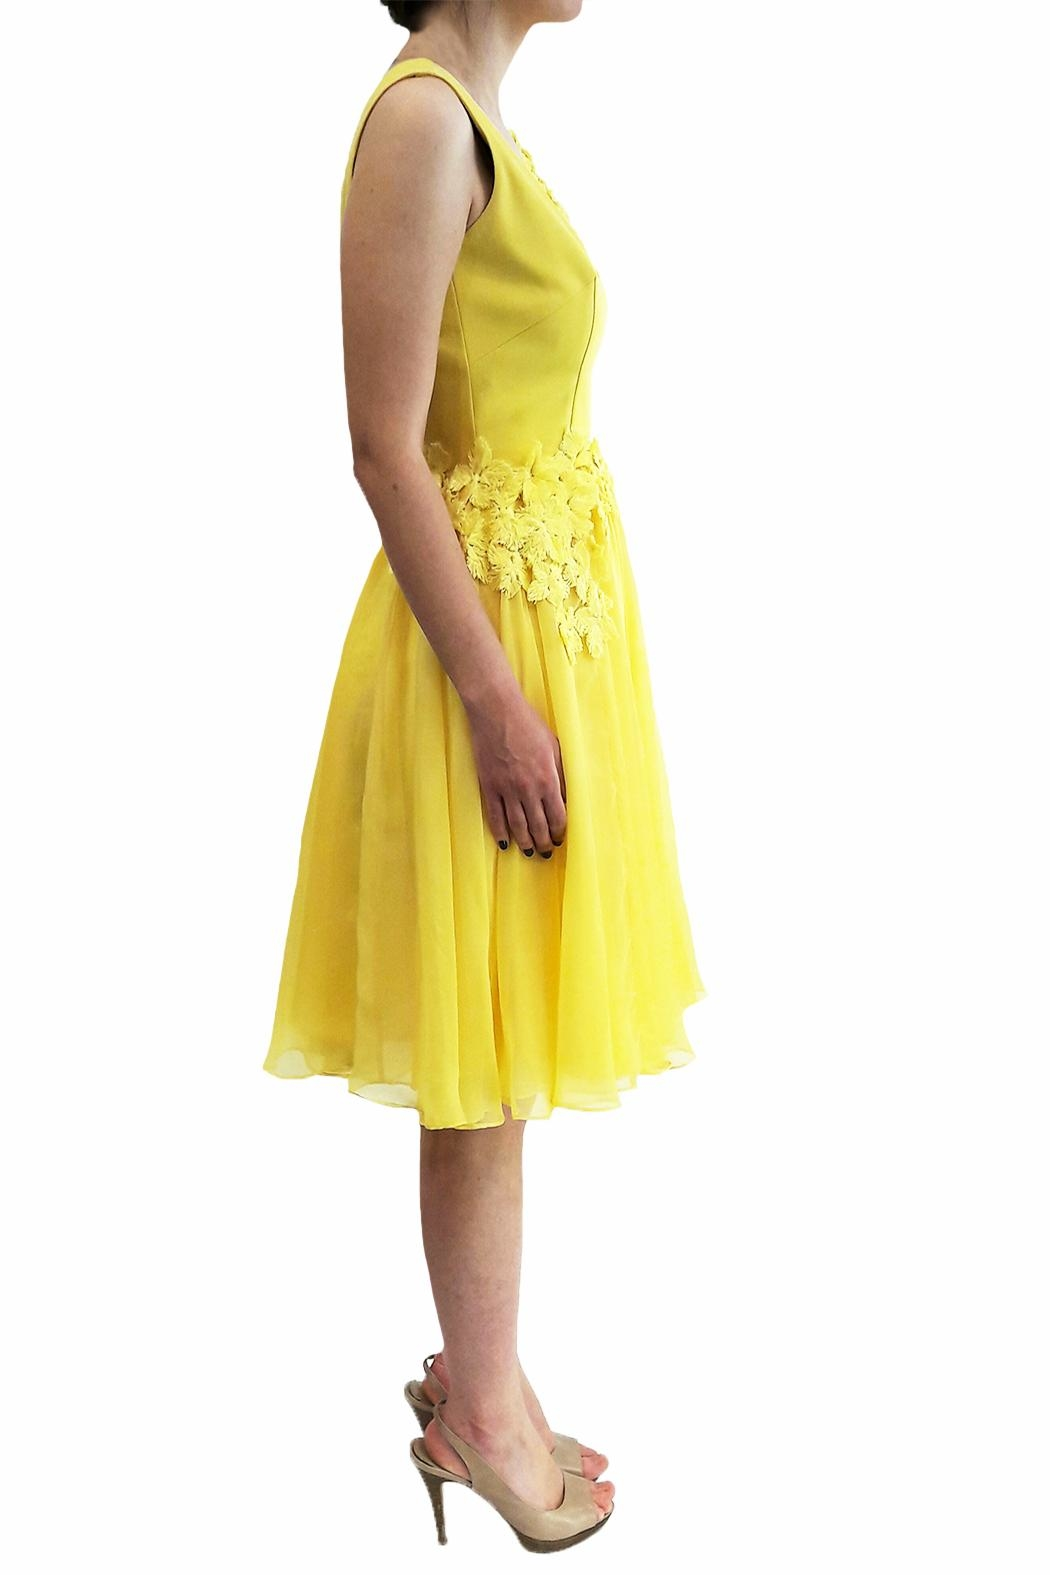 Isabel Garcia Sunny Flower Dress - Front Full Image